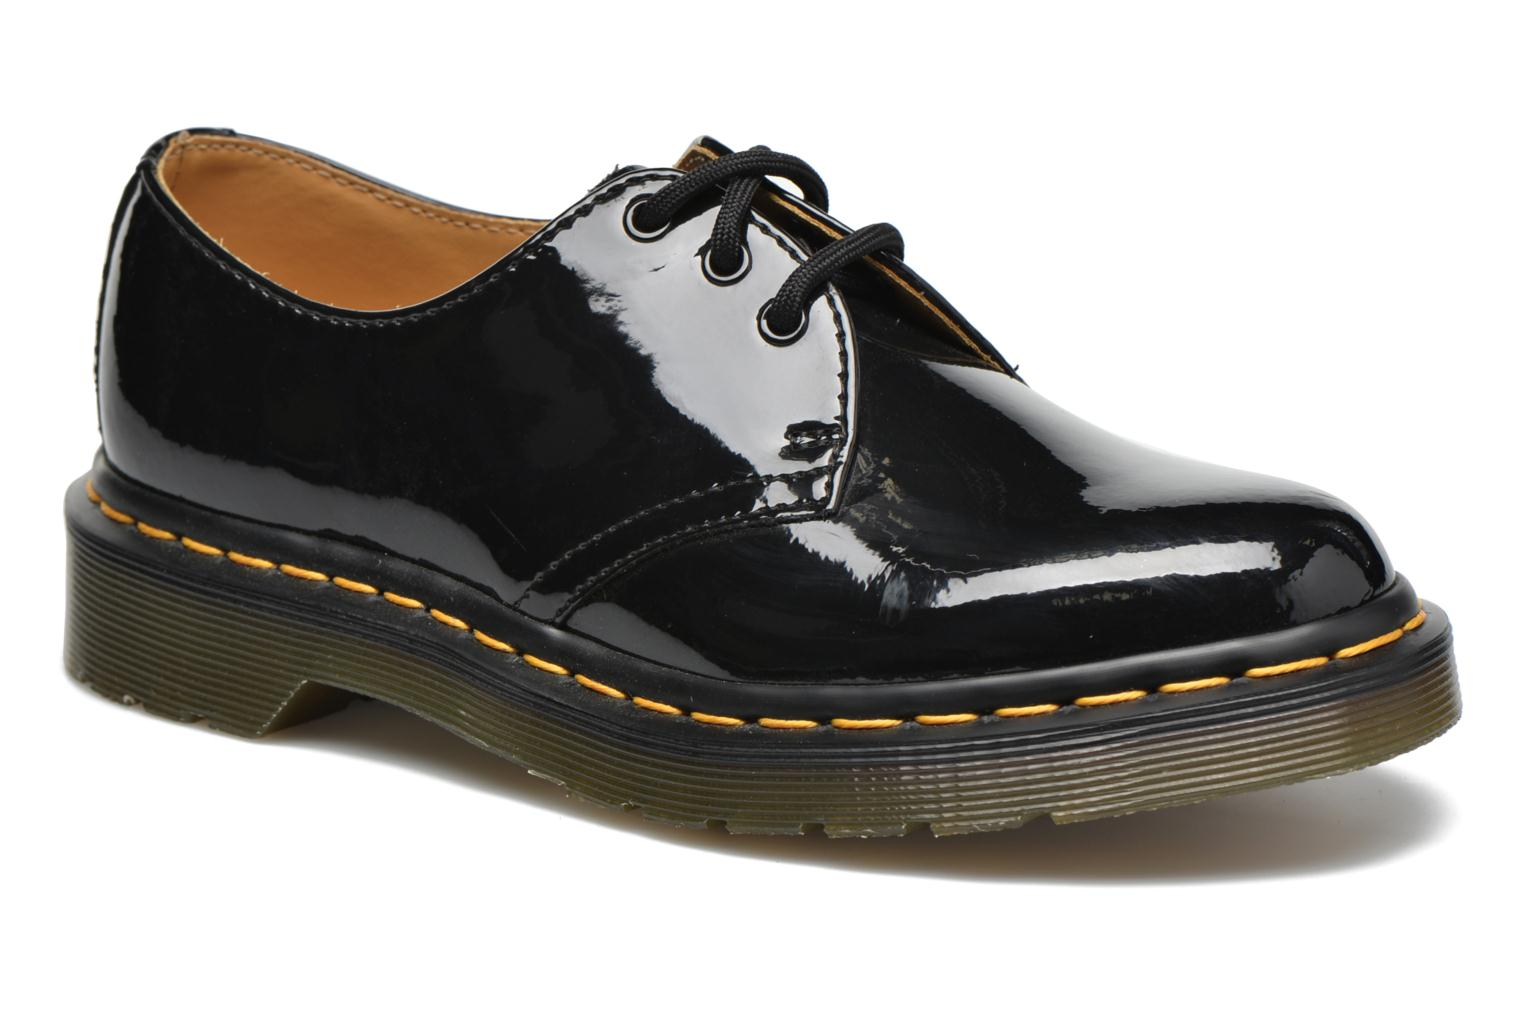 1461 Chaussures W E Dr. Martens